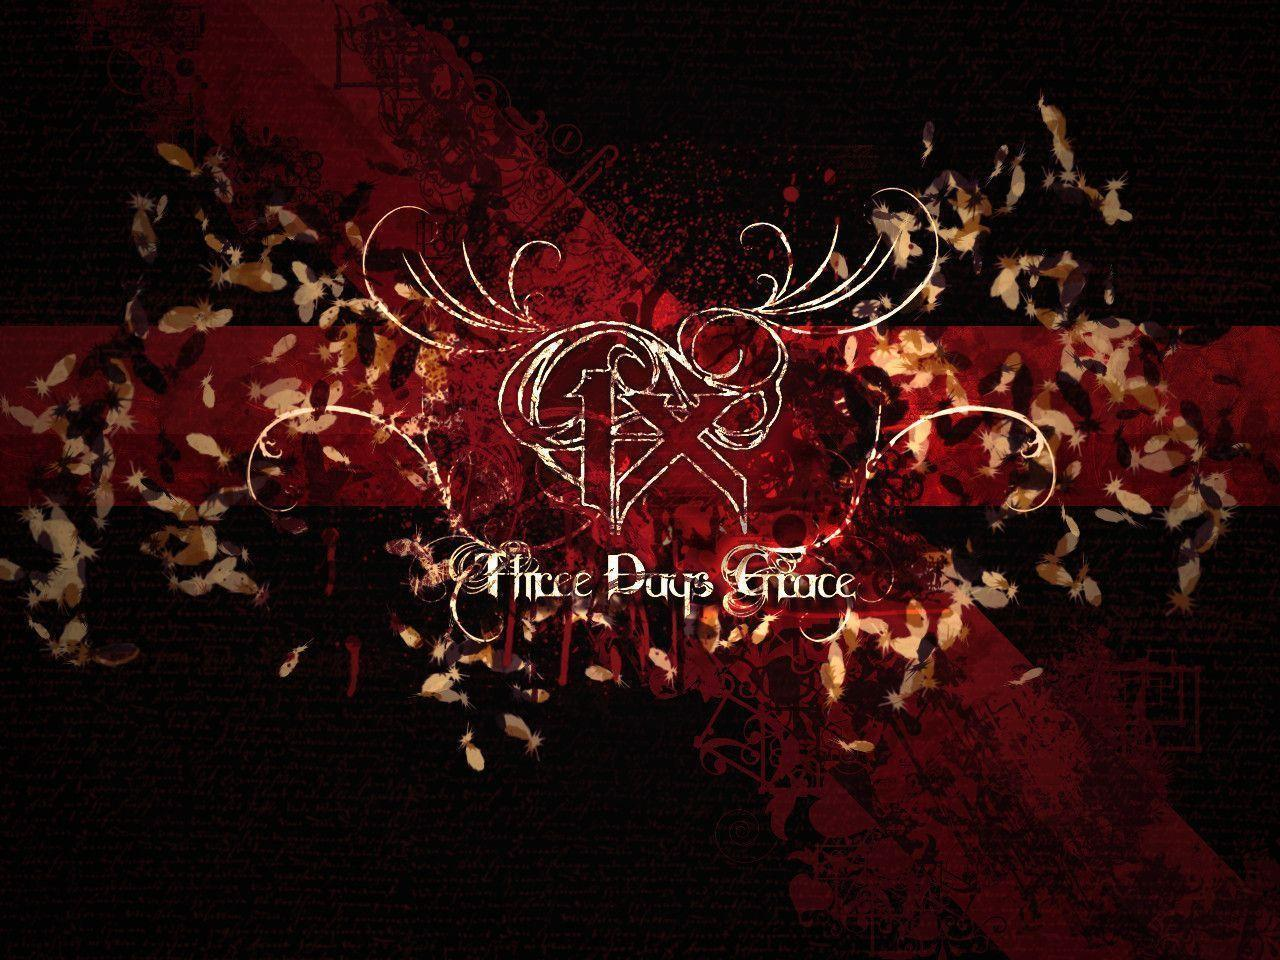 Three days grace wallpapers wallpaper cave - Three days grace wallpaper ...